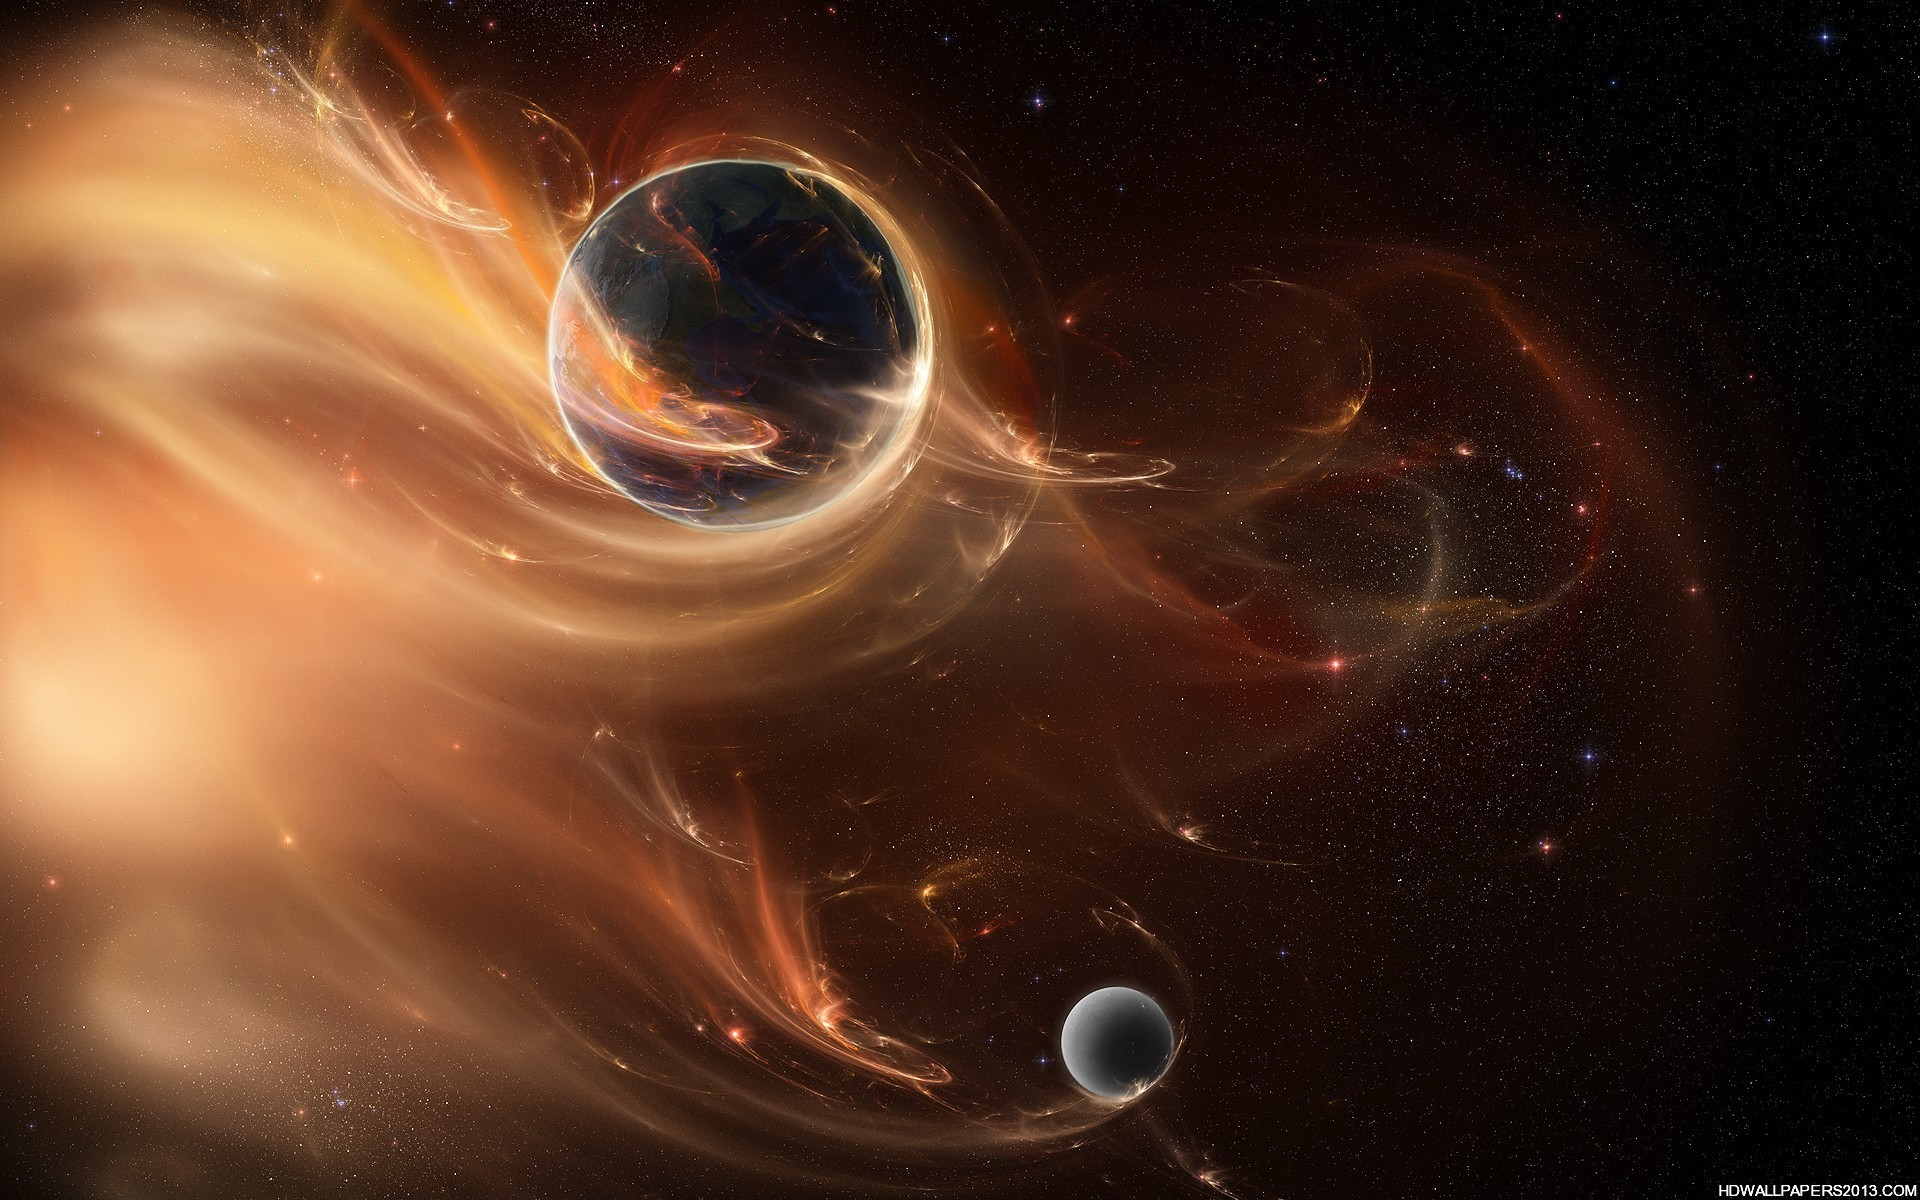 Cool space wallpapers 76 background pictures - Space wallpaper 1920x1200 ...